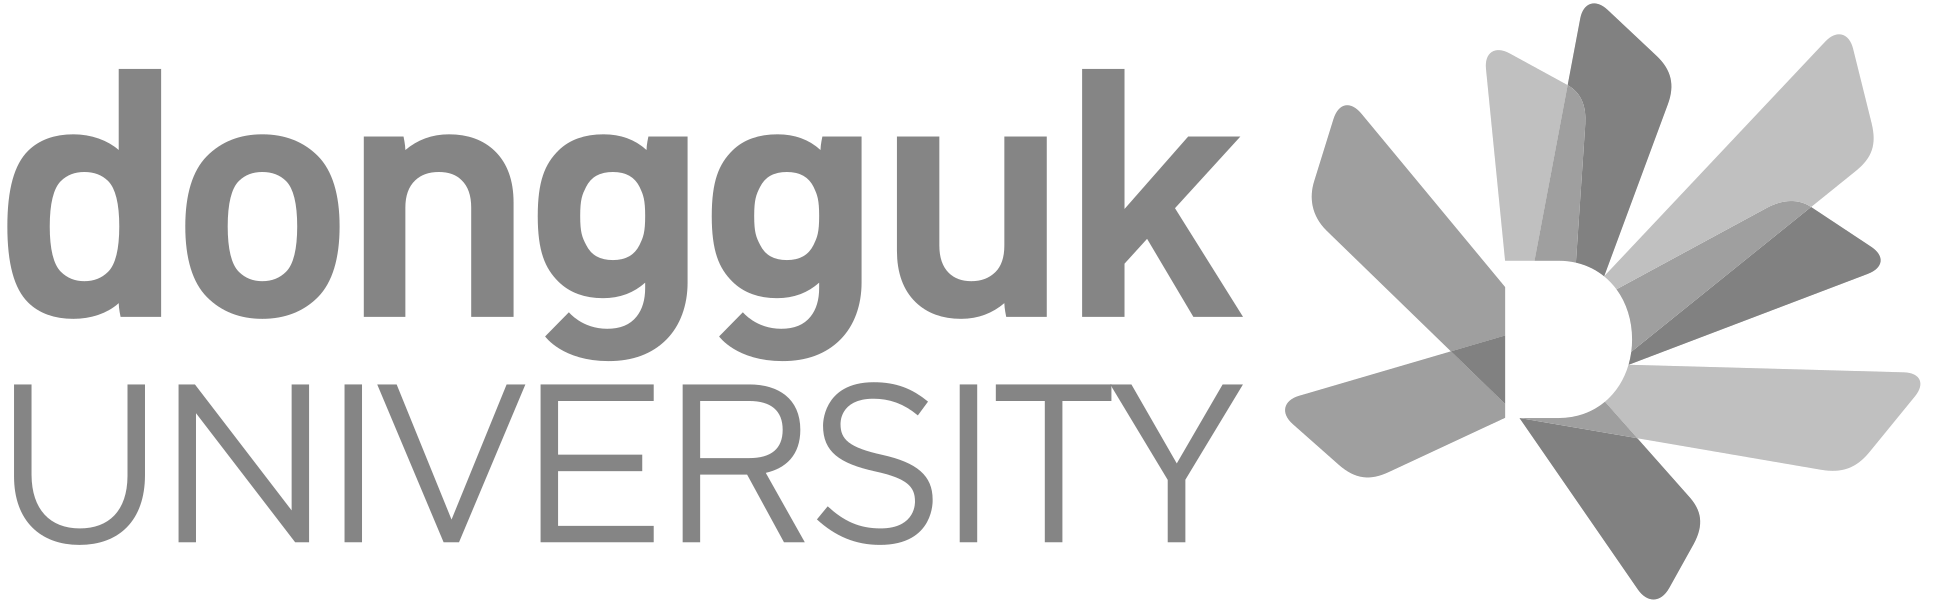 파일:Dongguk_University_CommunicativeLogo.png